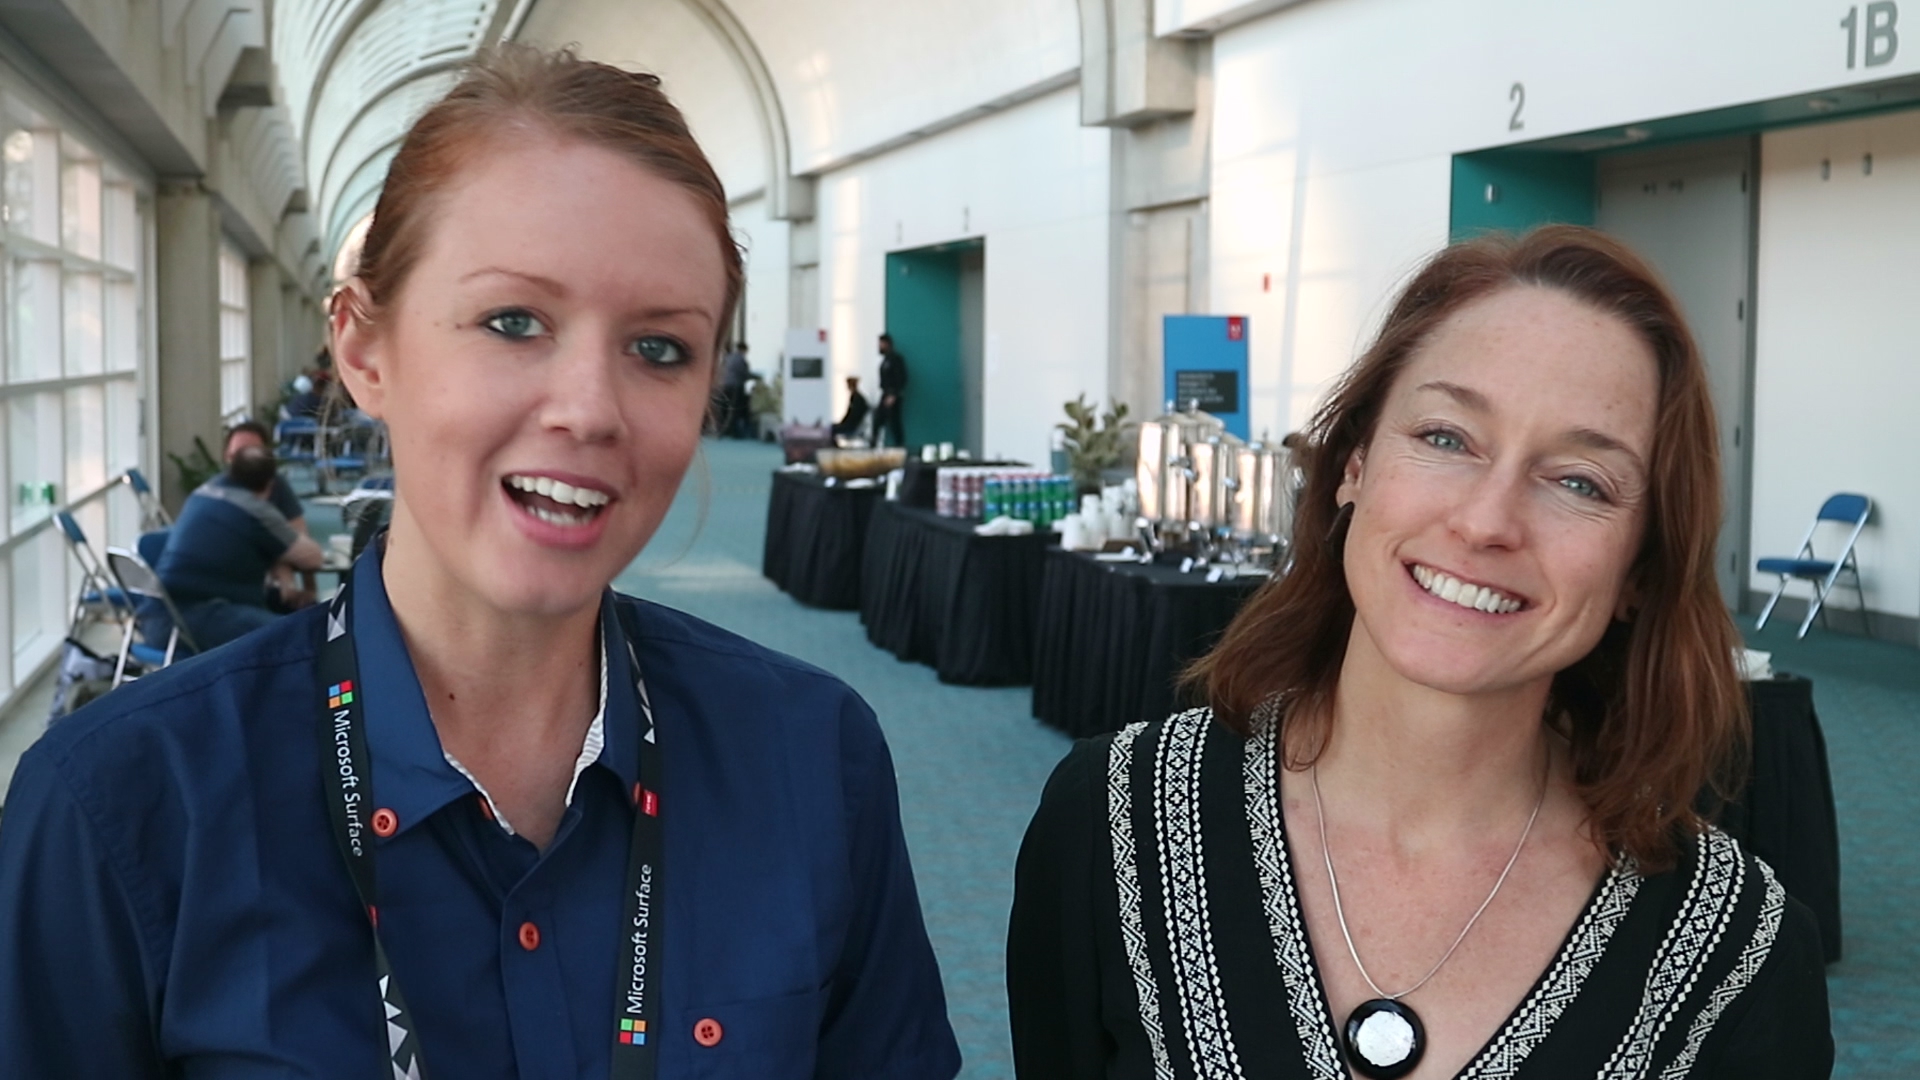 Left to Right. Premiere Gal and Christine Steele, Premiere Pro Trainer & Documentary Filmmaker at Steele Pictures. Her favorite tool in Premiere Pro is optical flow time-remapping.